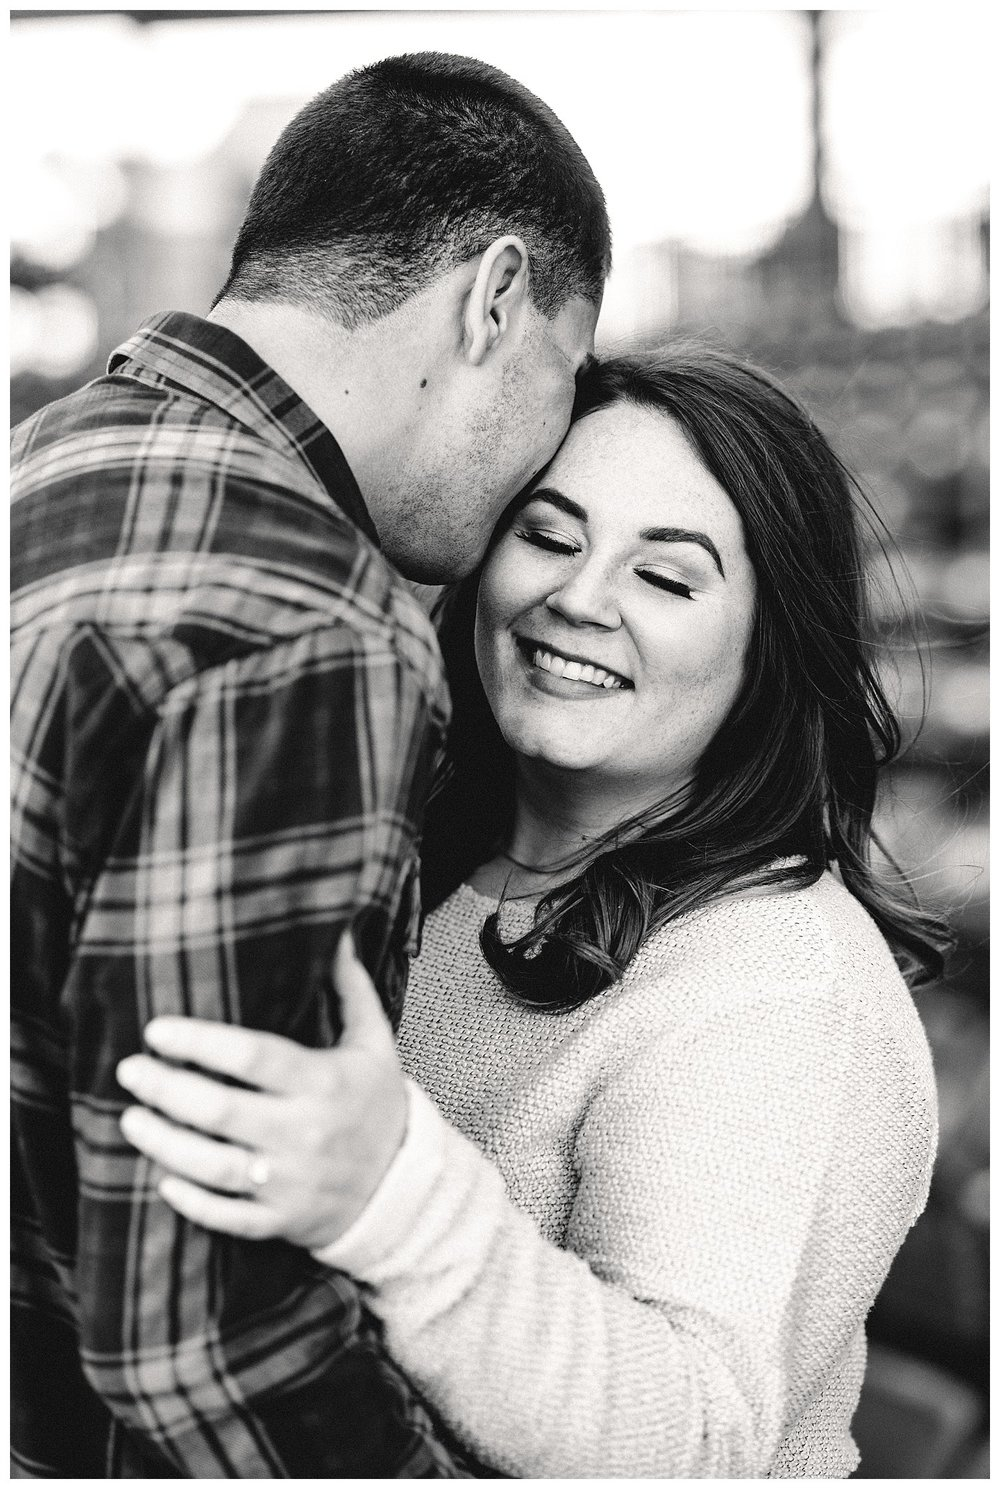 Kelsey_Diane_Photography_T-Bones_Stadium_Kansas_Wandering_Adventourus_Kansas_City_Engagement_0088.jpg